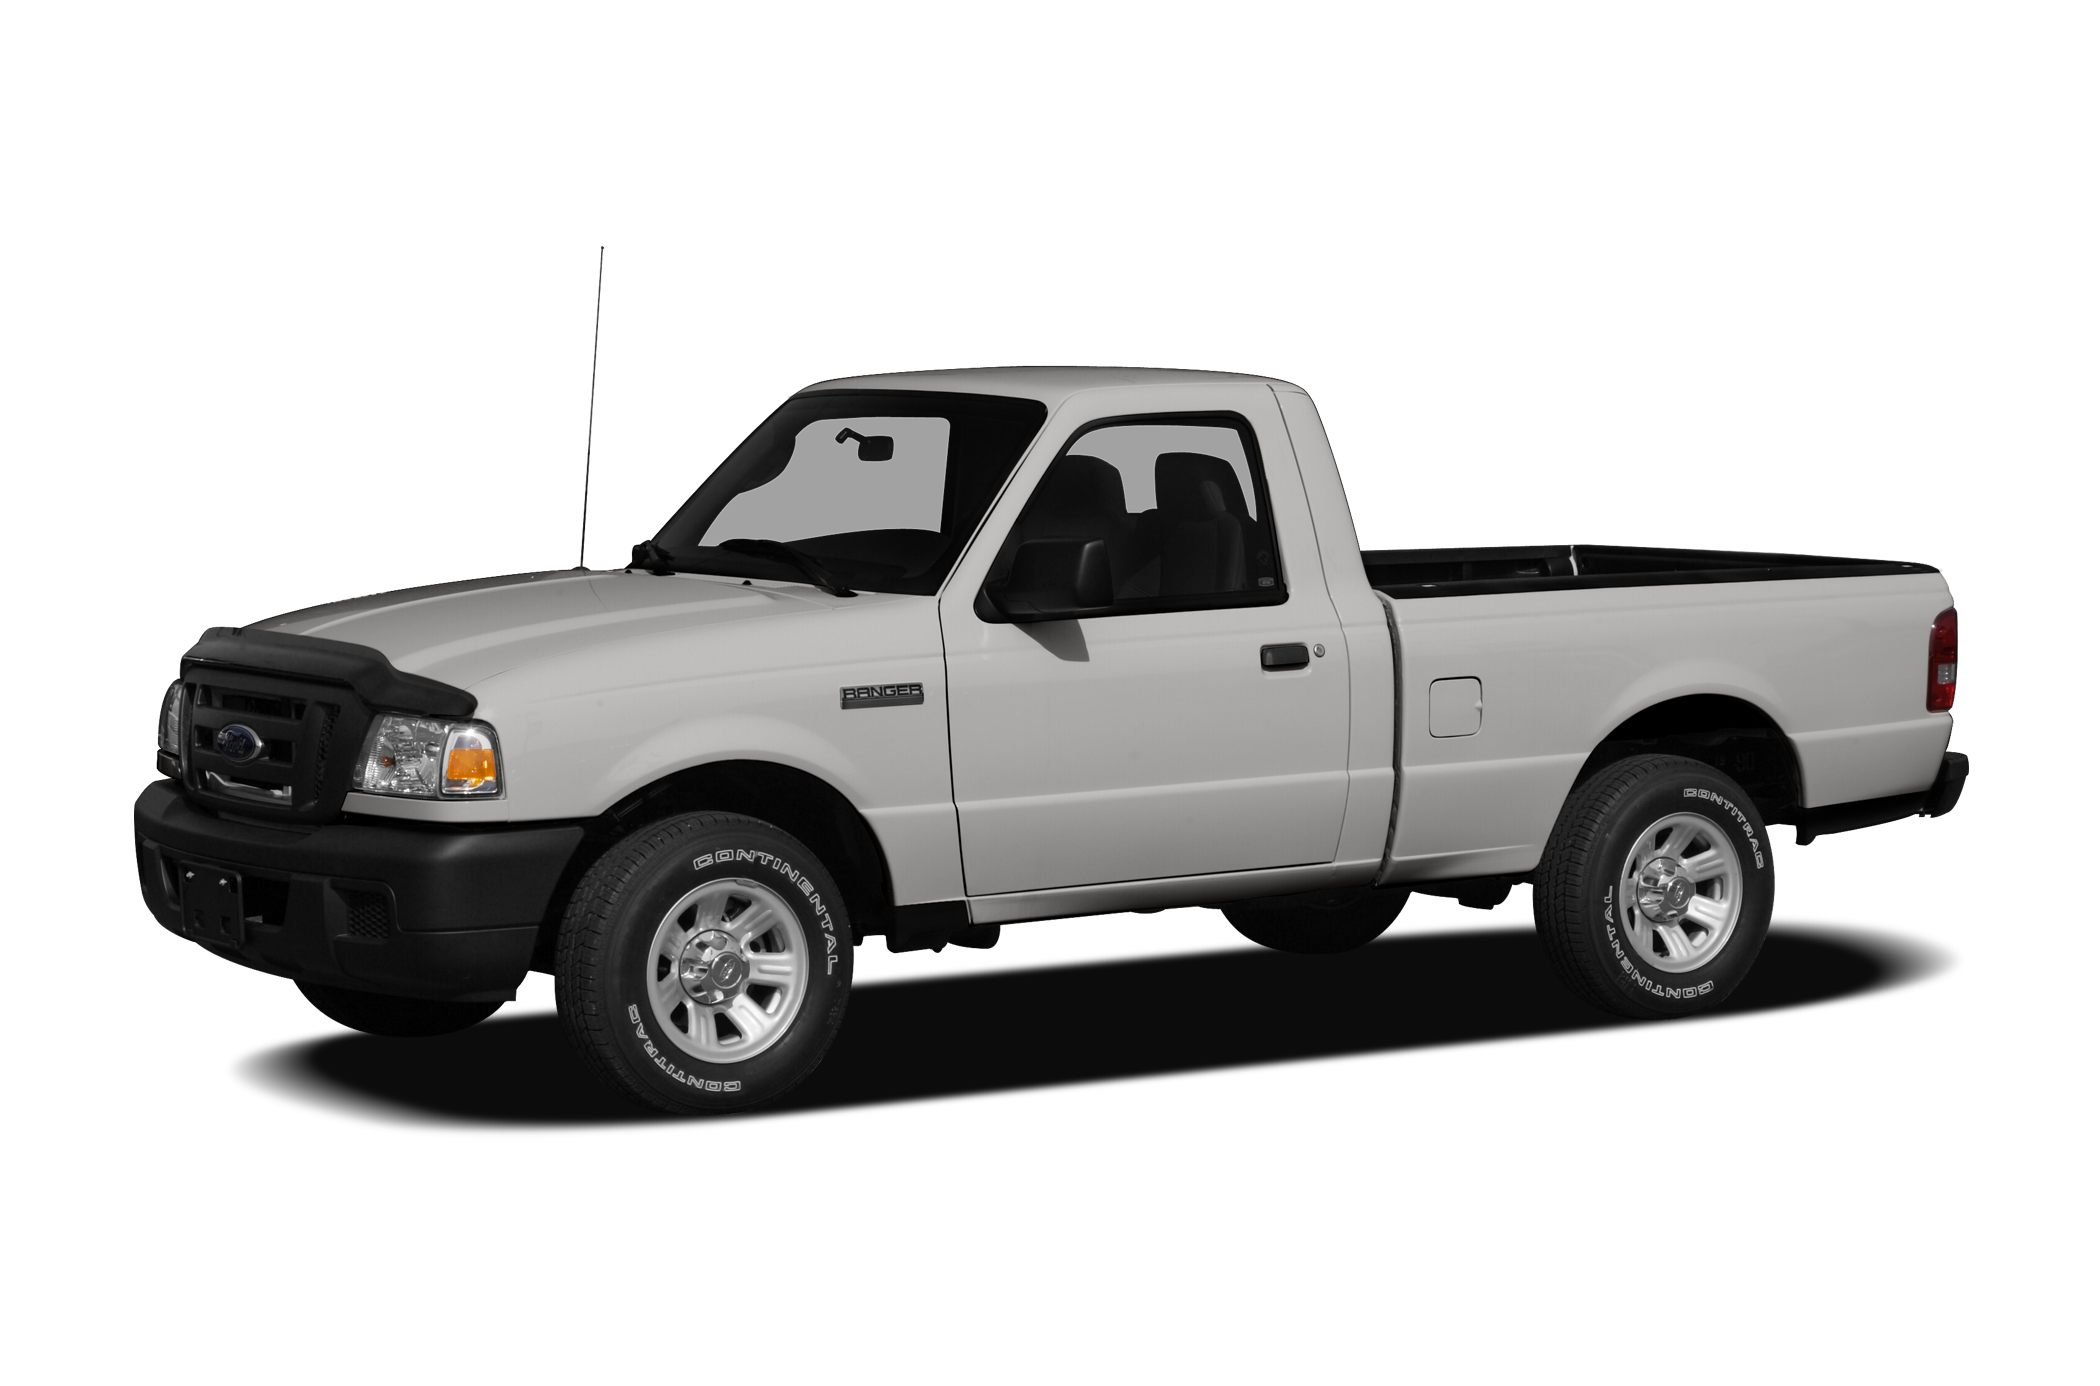 2006 ford ranger information